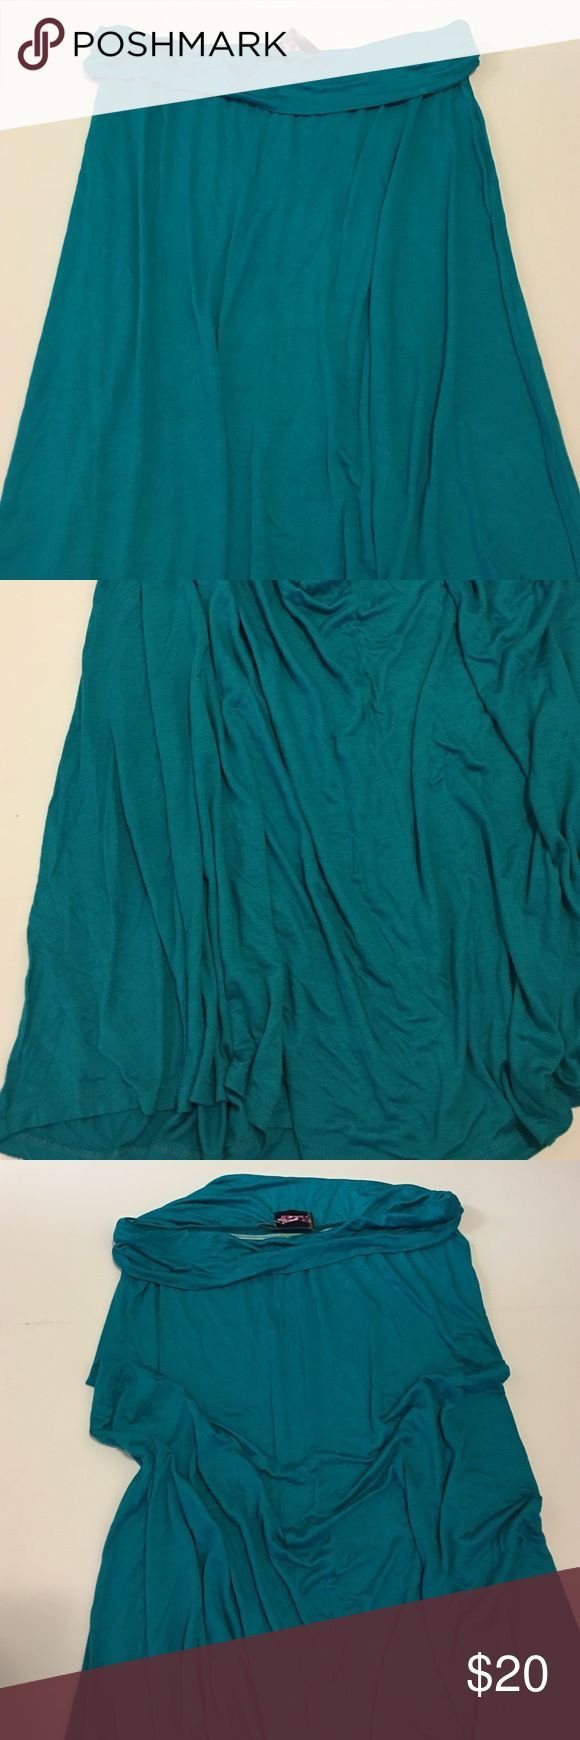 Teal Maxi Skirt Stunning teal maxi skirt in excellent brand new with tags condition. Brand: Hug. Super chic and stylish! Perfect for summer. Available in multiple sizes while supplies last! Please don't hesitate to comment if you have any questions. Hug Skirts Maxi